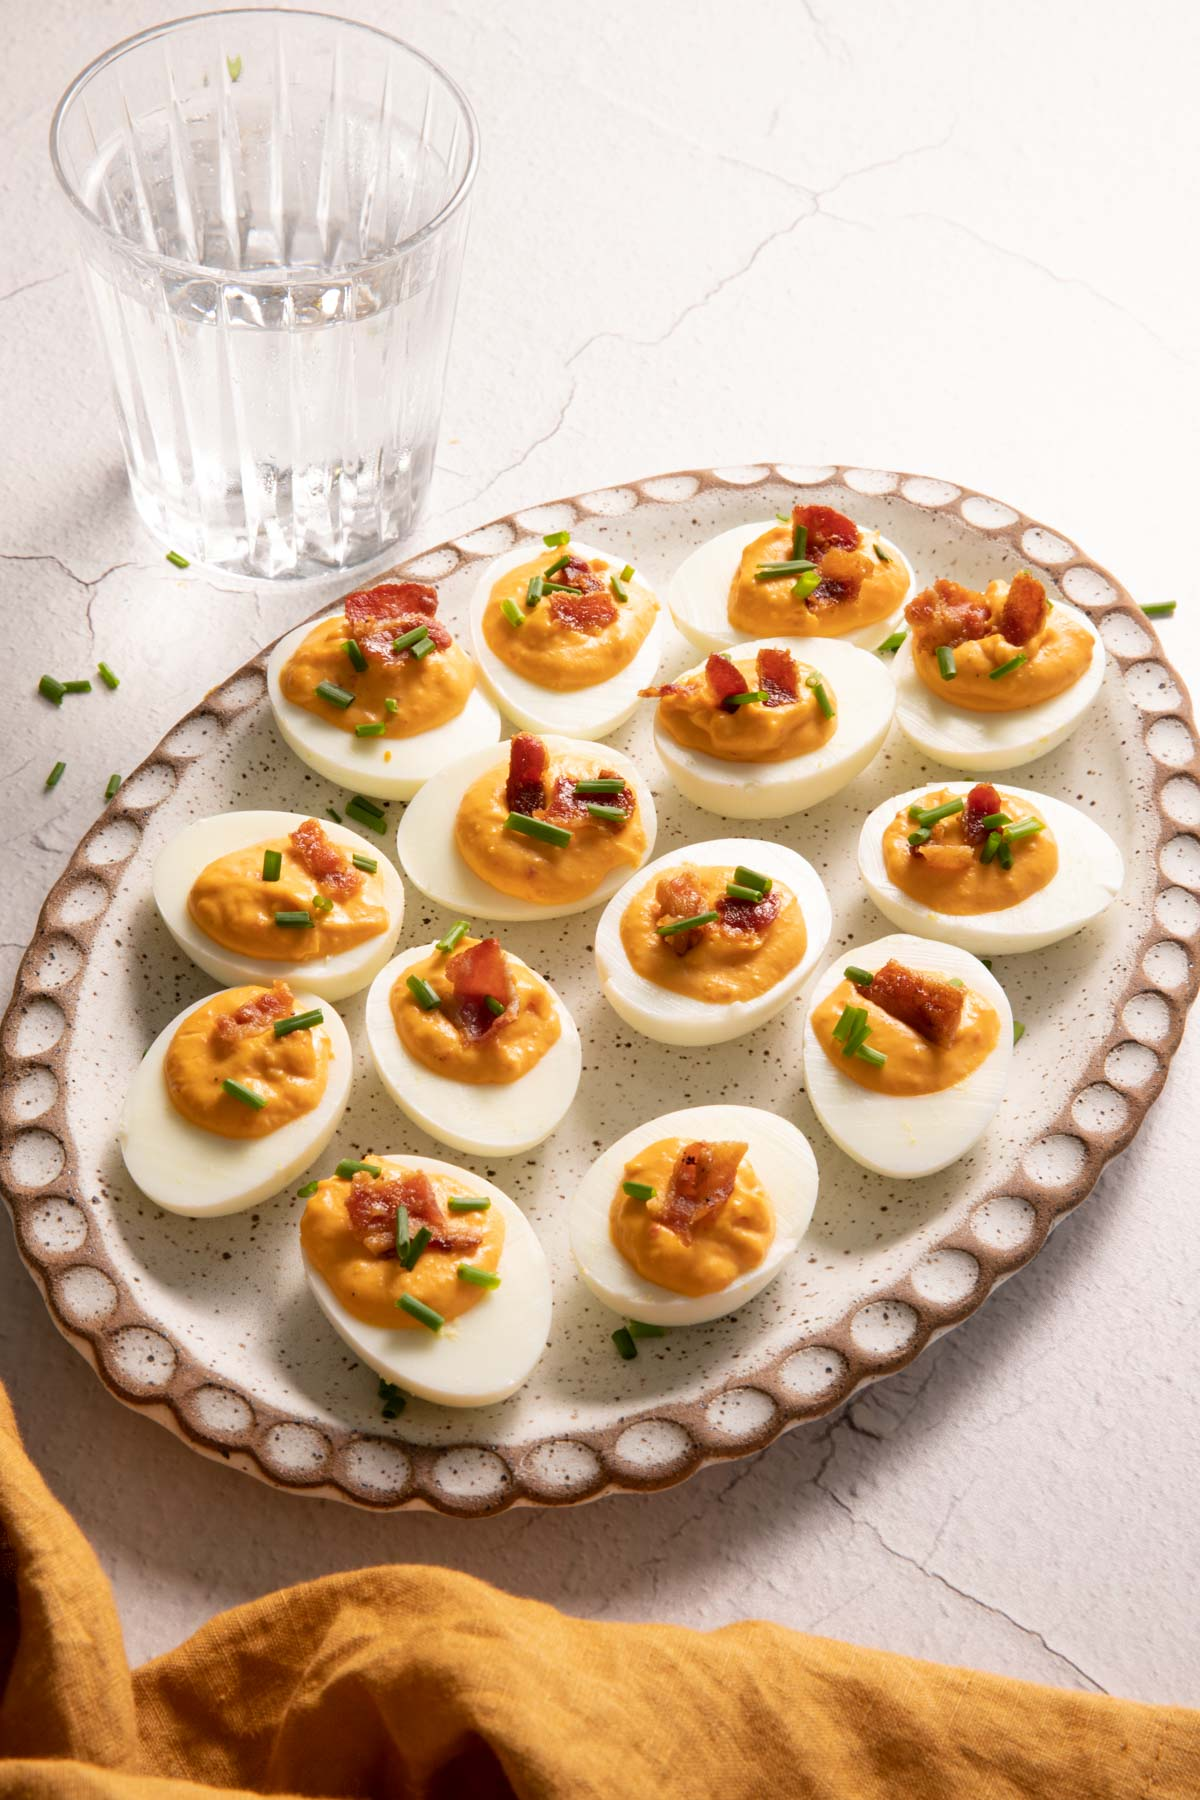 Deviled eggs with bacon on an oval plate and a glass of water